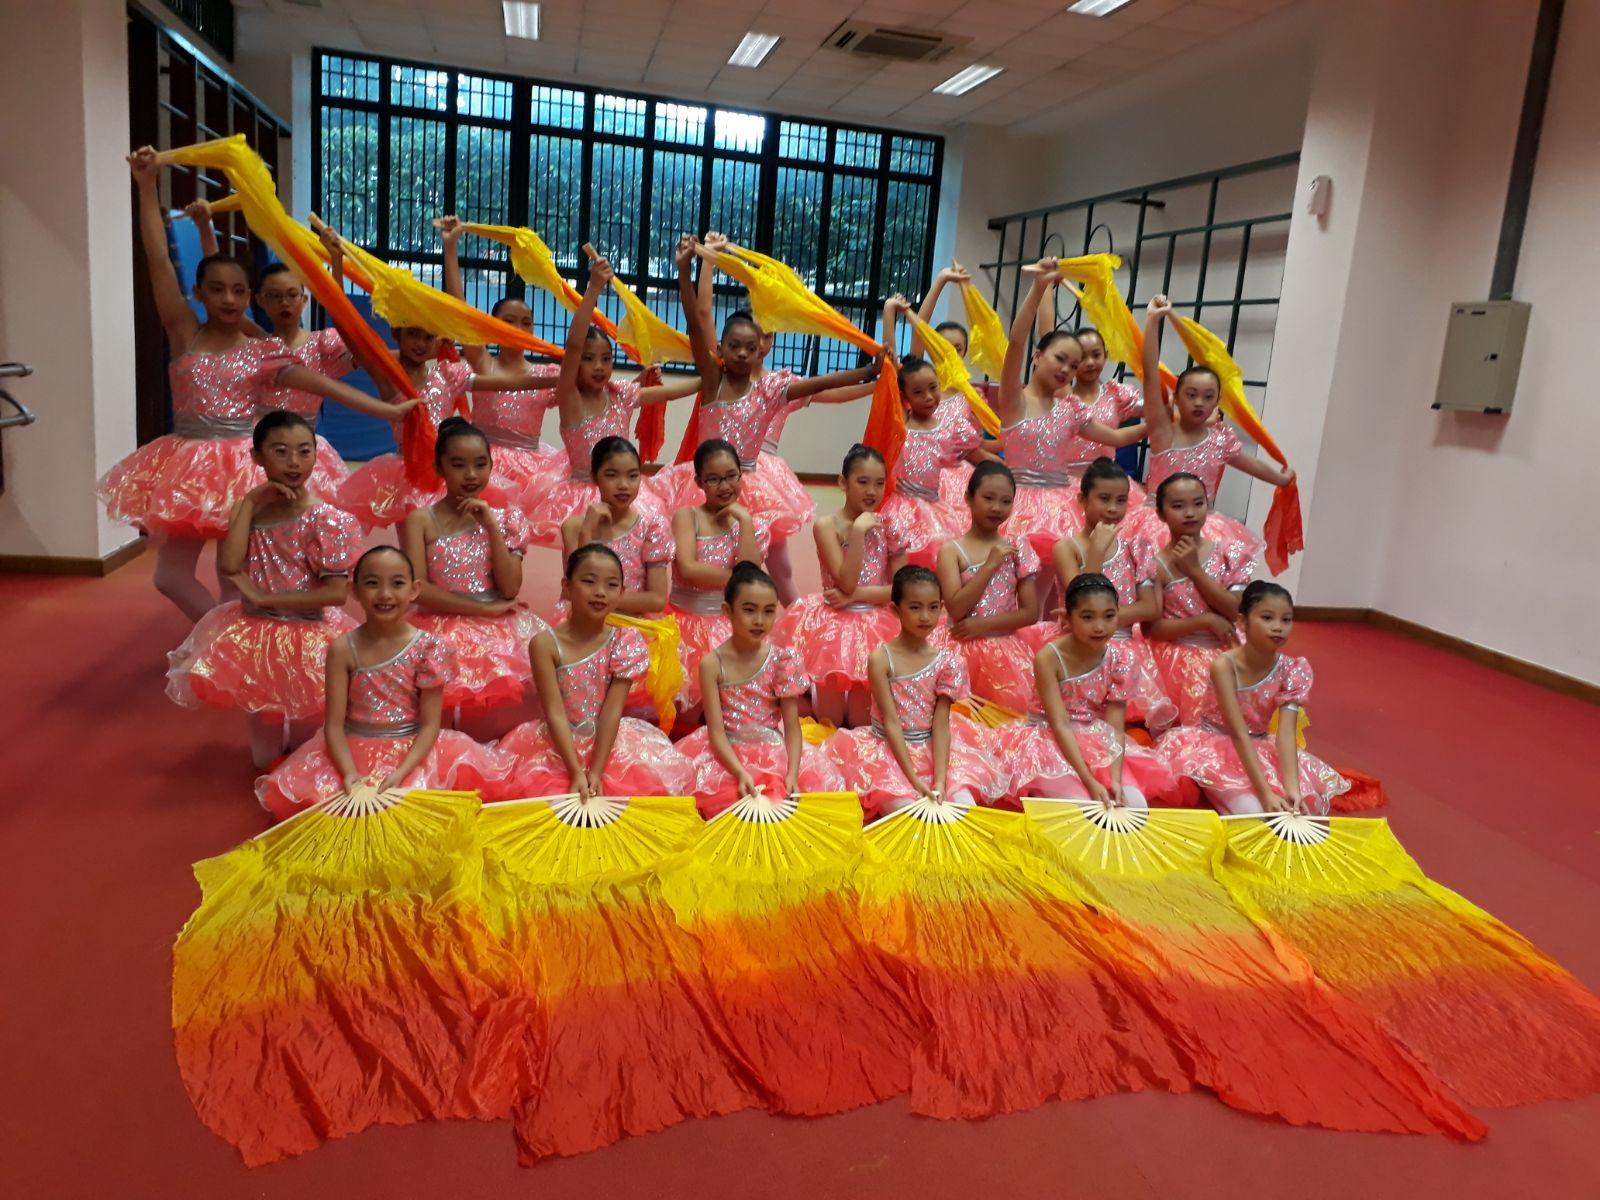 Chinese New Year celebration - Fan Dance.jpg